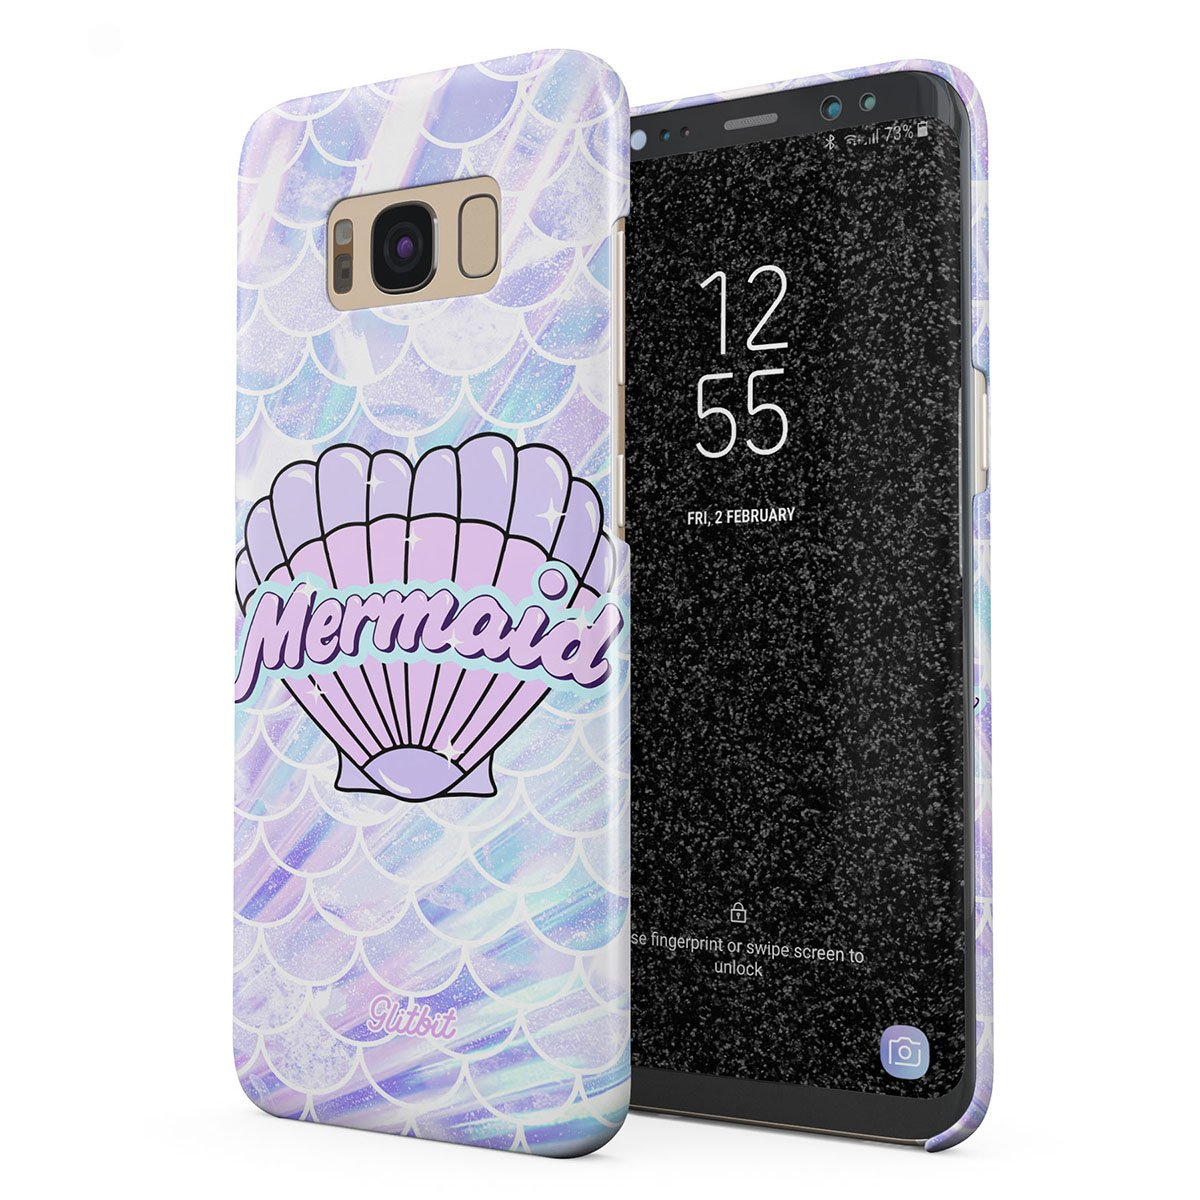 Glitbit Compatible with Samsung Galaxy S8 Case Mermaid Seashell Paua Abalone Queen Princess Ocean Sea Holographic Purple Aesthetic Thin Design Durable Hard Shell Plastic Protective Case Cover by Glitbit